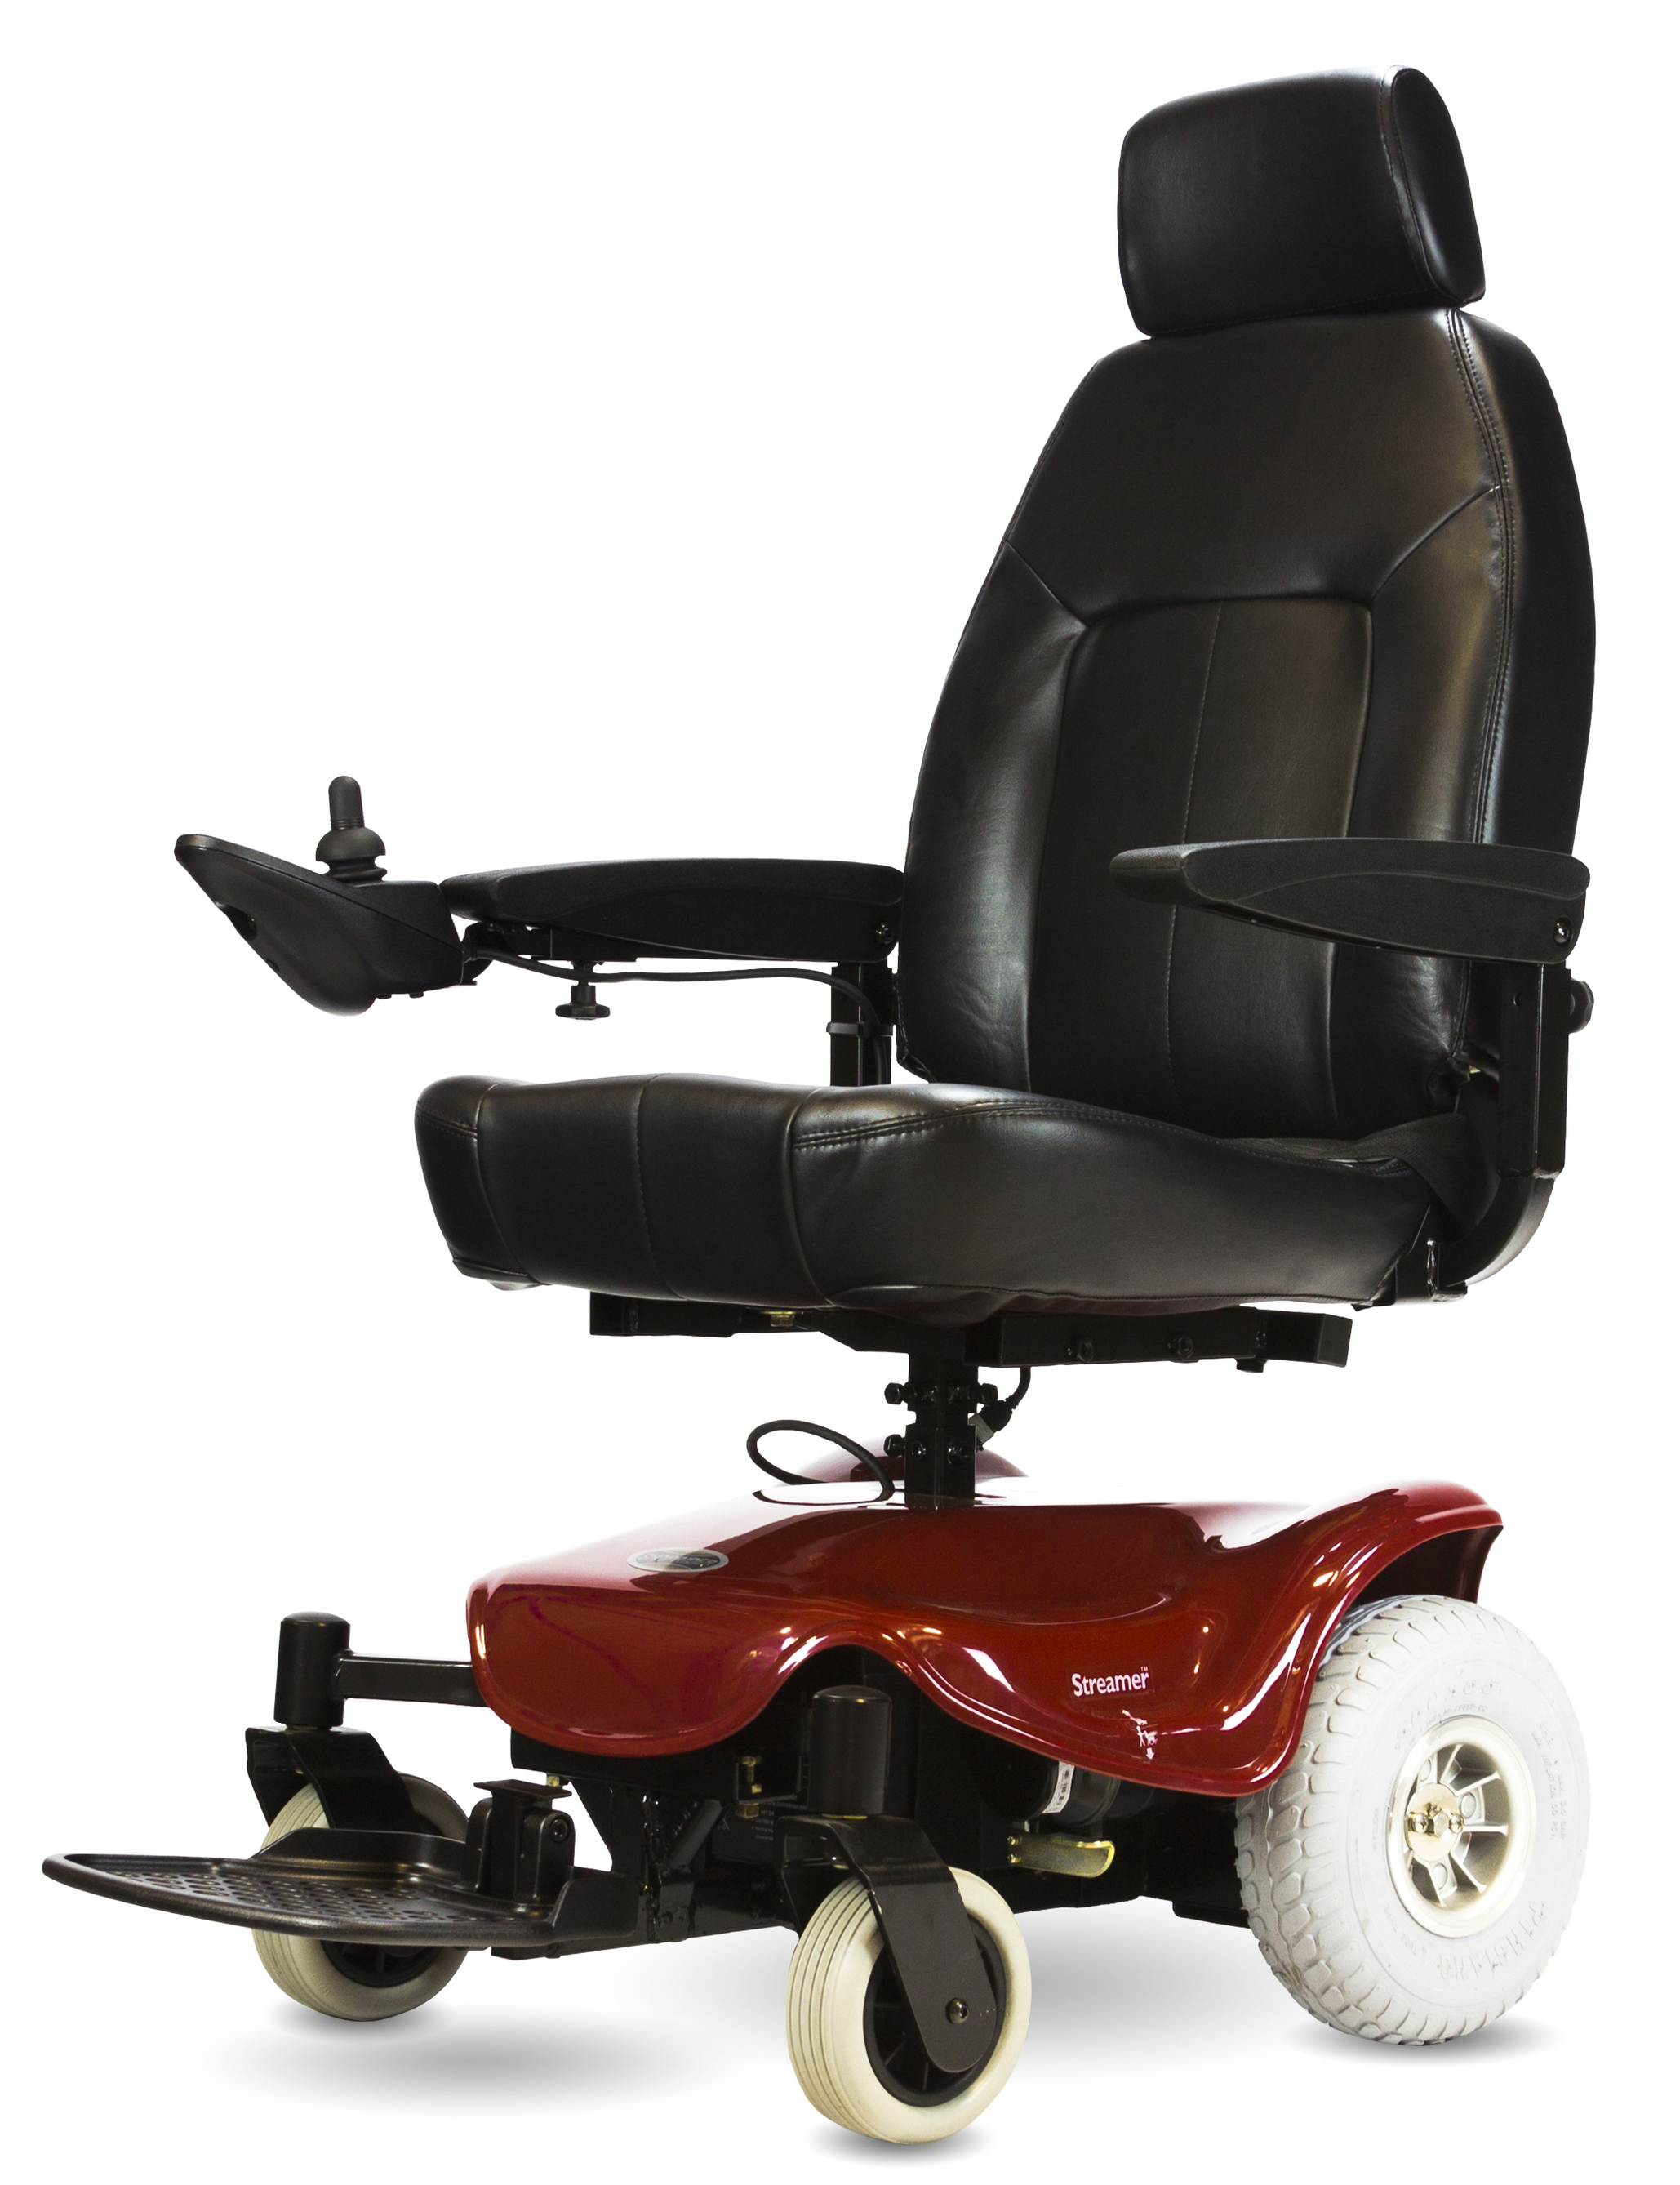 Shoprider Streamer Sport Rear-Wheel Drive Powerchair w/Captain's Seat -  300lbs